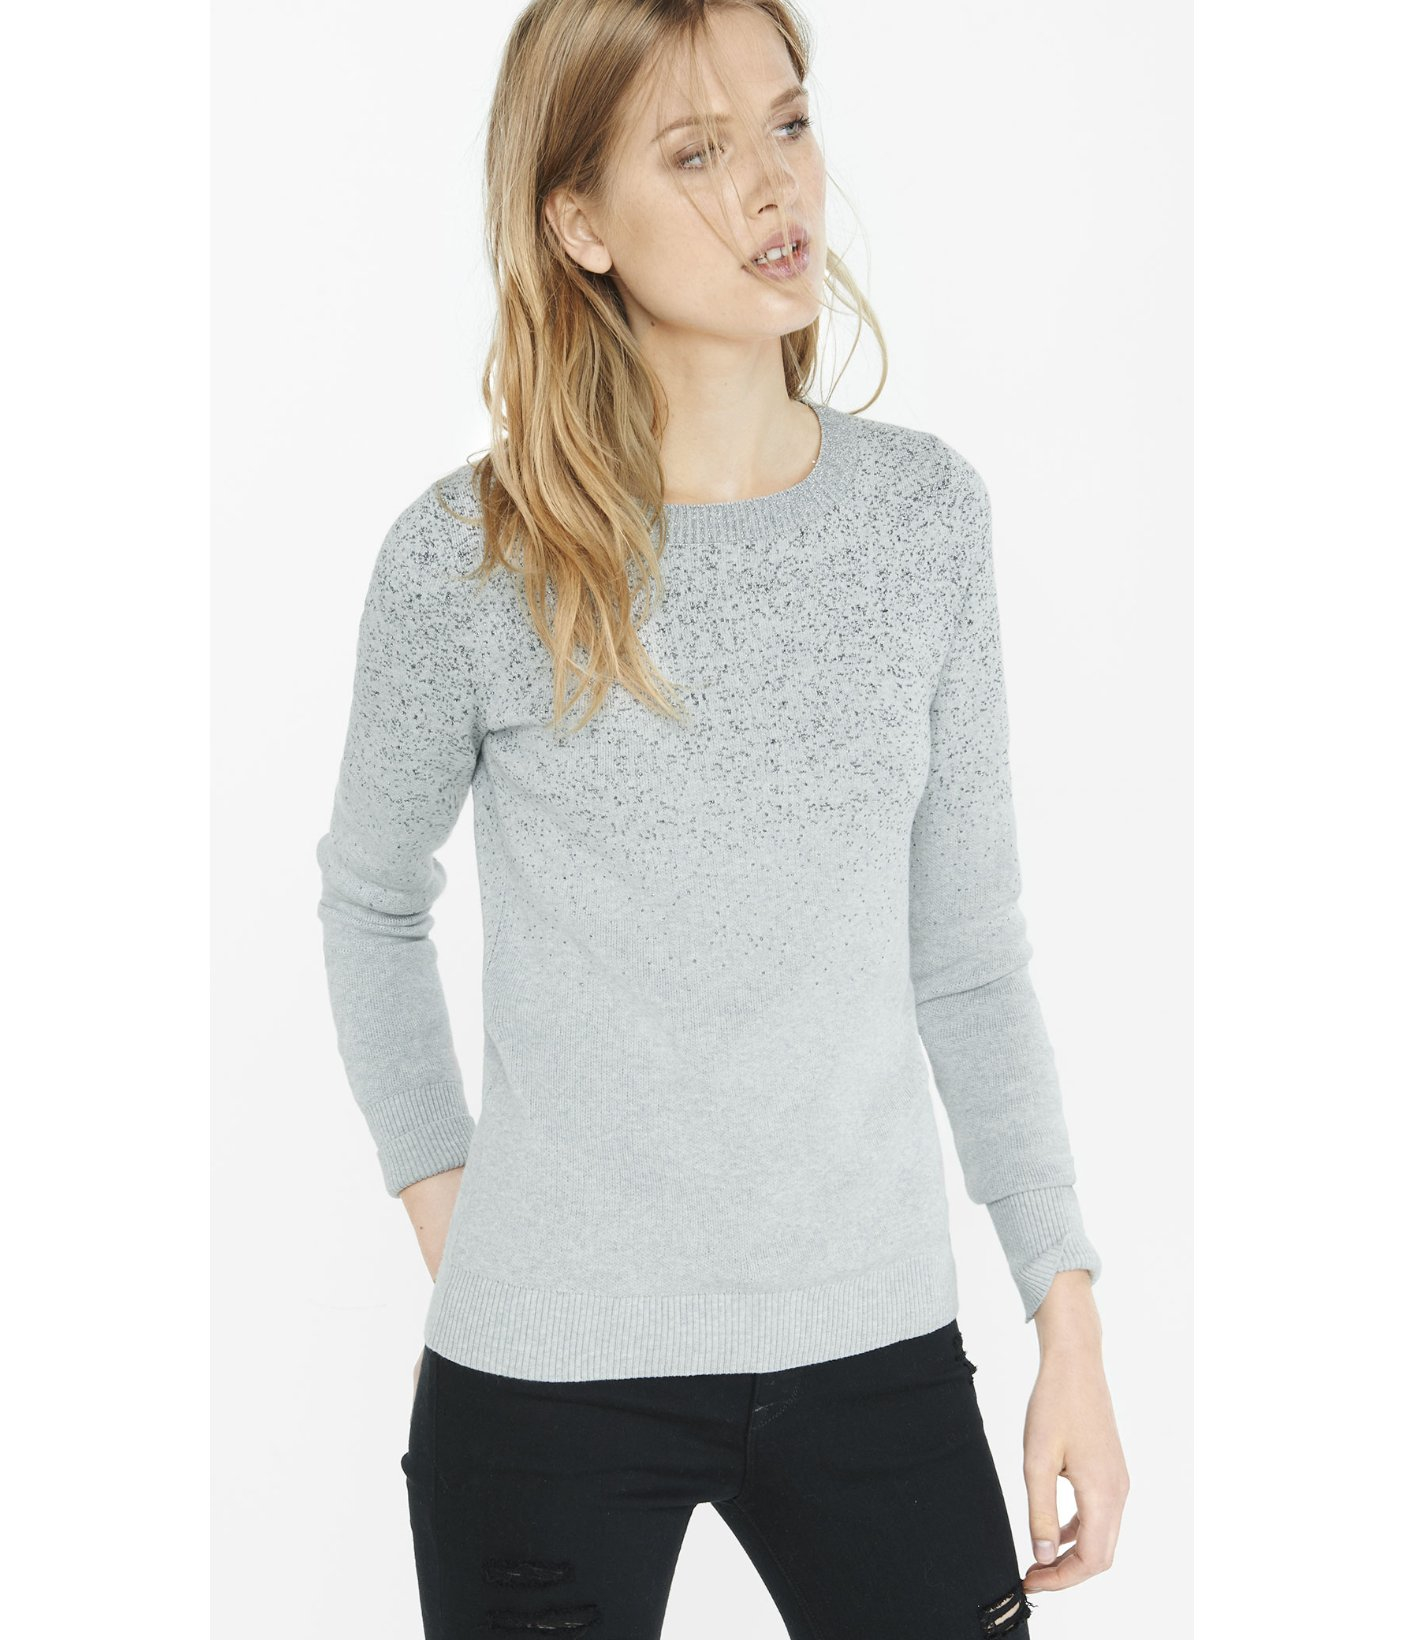 Express metallic ombre fitted crew neck sweater in for Silver metallic shirt women s